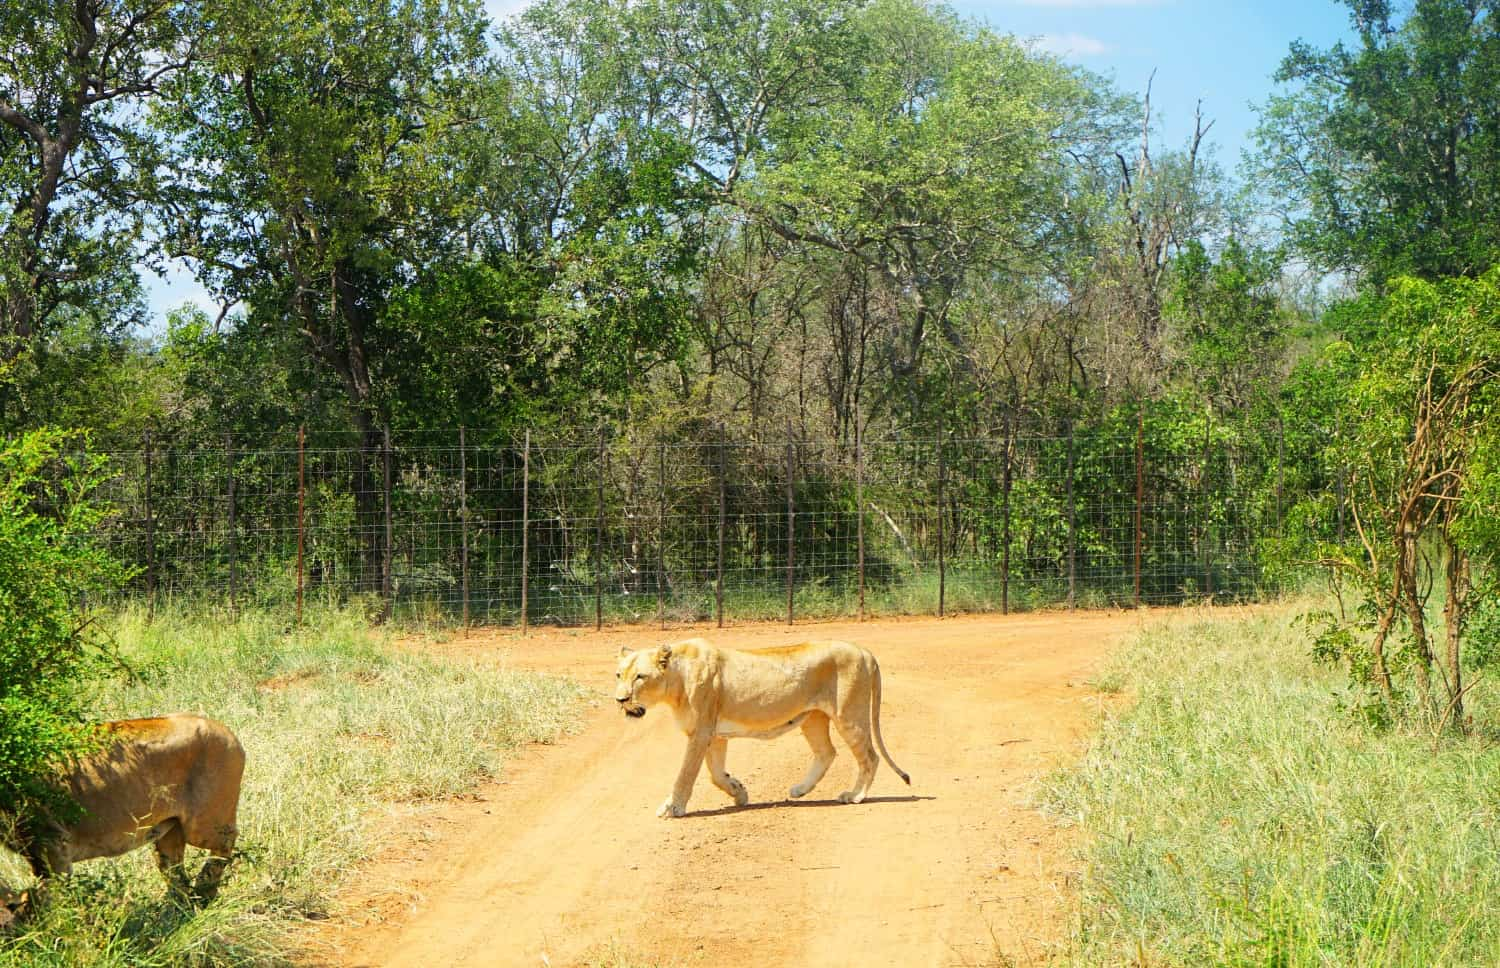 Lion at Hlane National Park